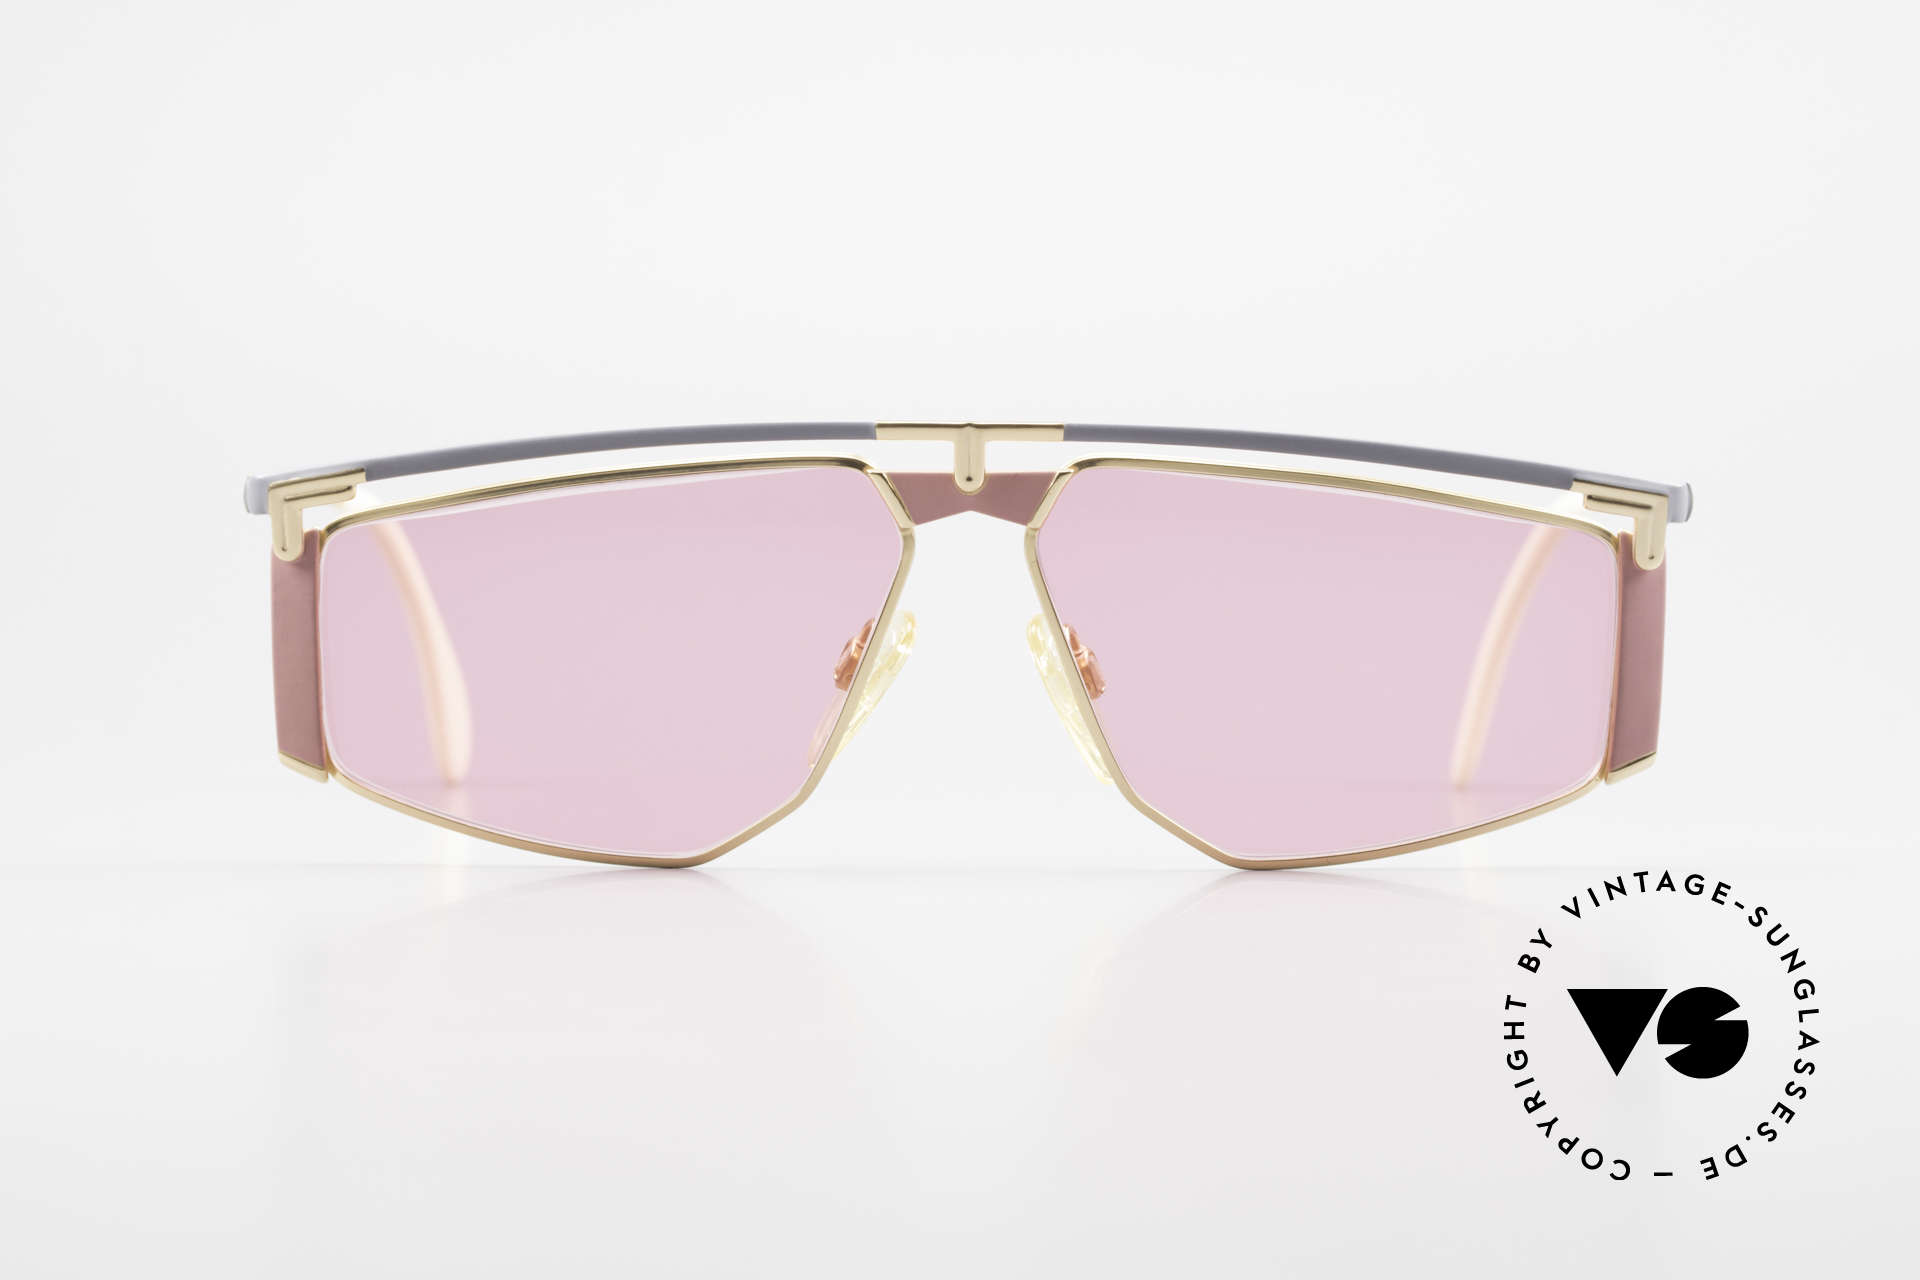 Cazal 235 Pink Titanium Vintage Frame, 1. class wearing comfort thanks to lightweight material, Made for Men and Women